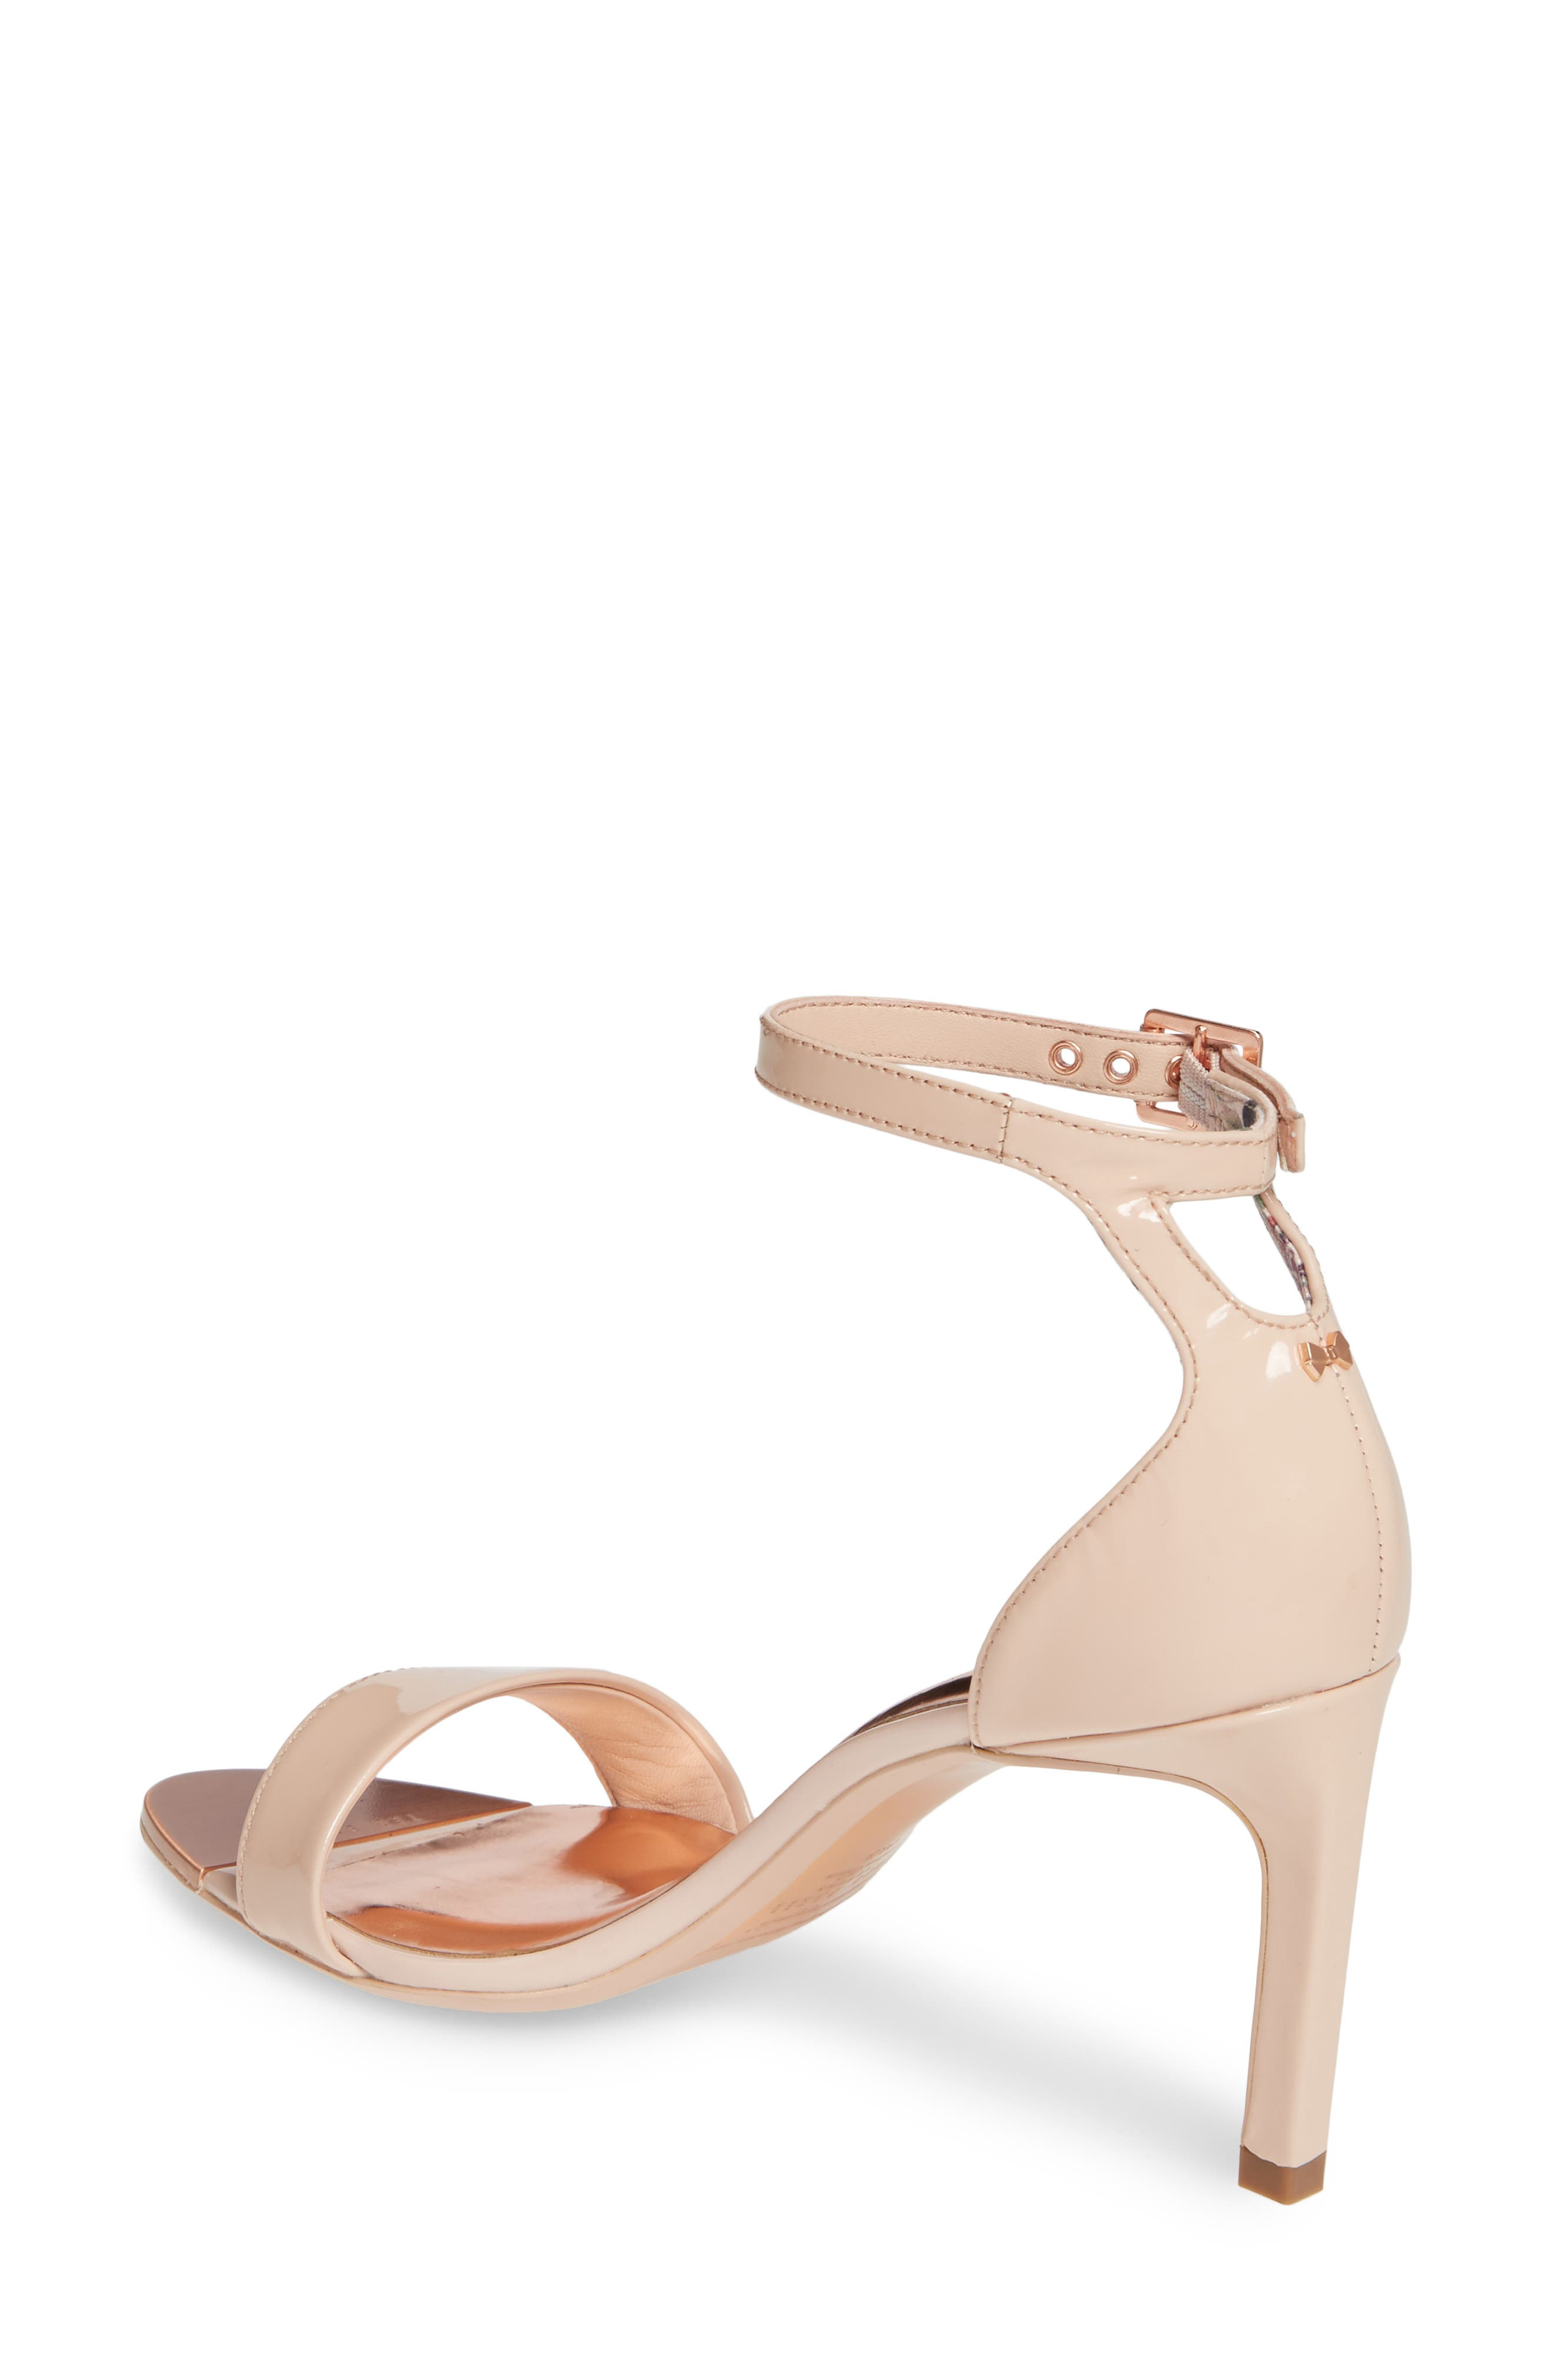 ,                             Ankle Strap Sandal,                             Alternate thumbnail 2, color,                             NUDE PATENT LEATHER